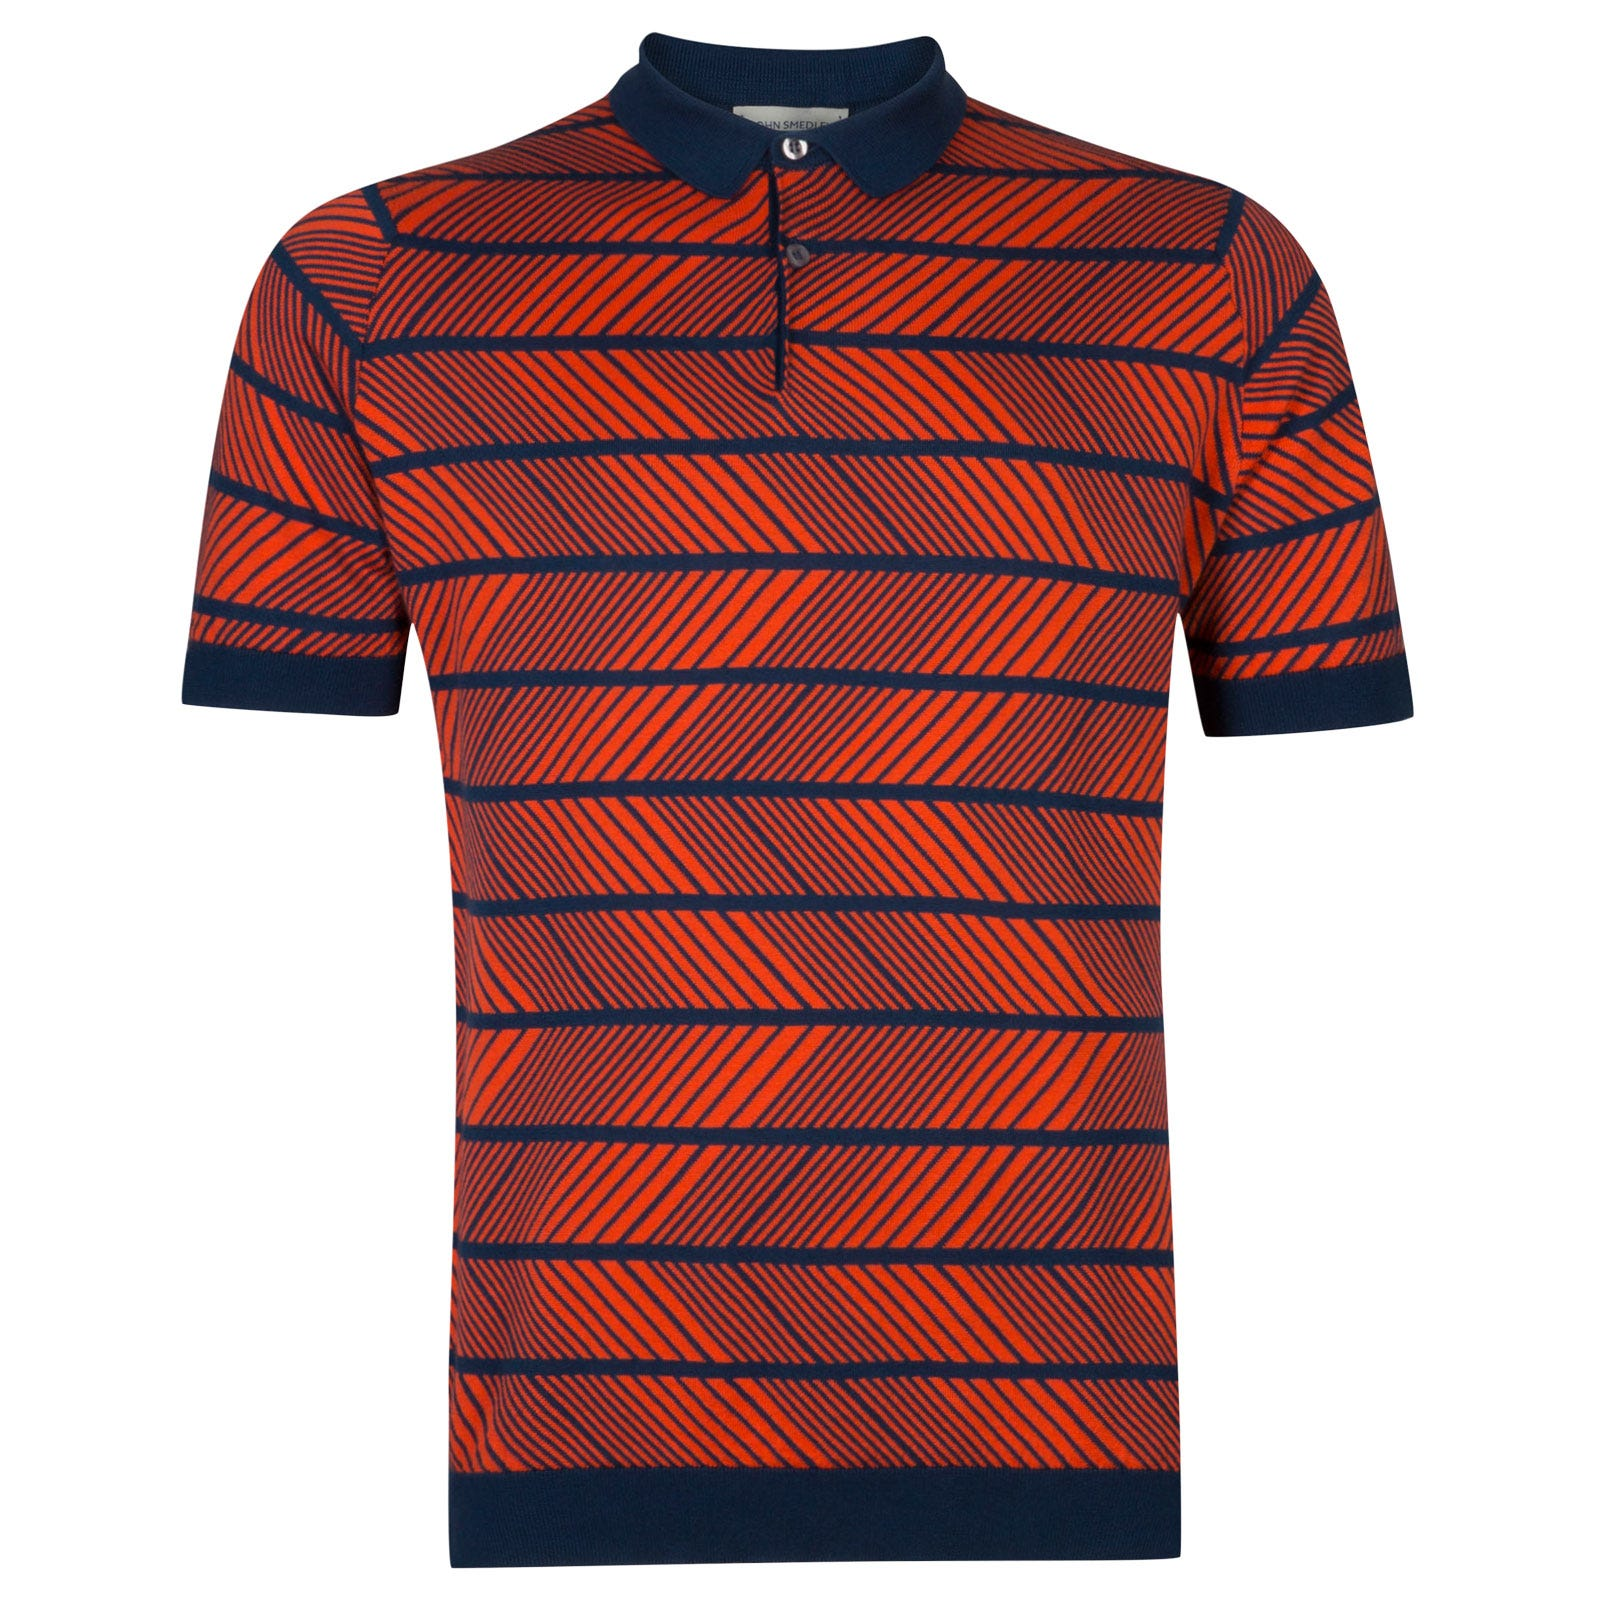 John Smedley Hermann in Indigo/Gehry Orange-L